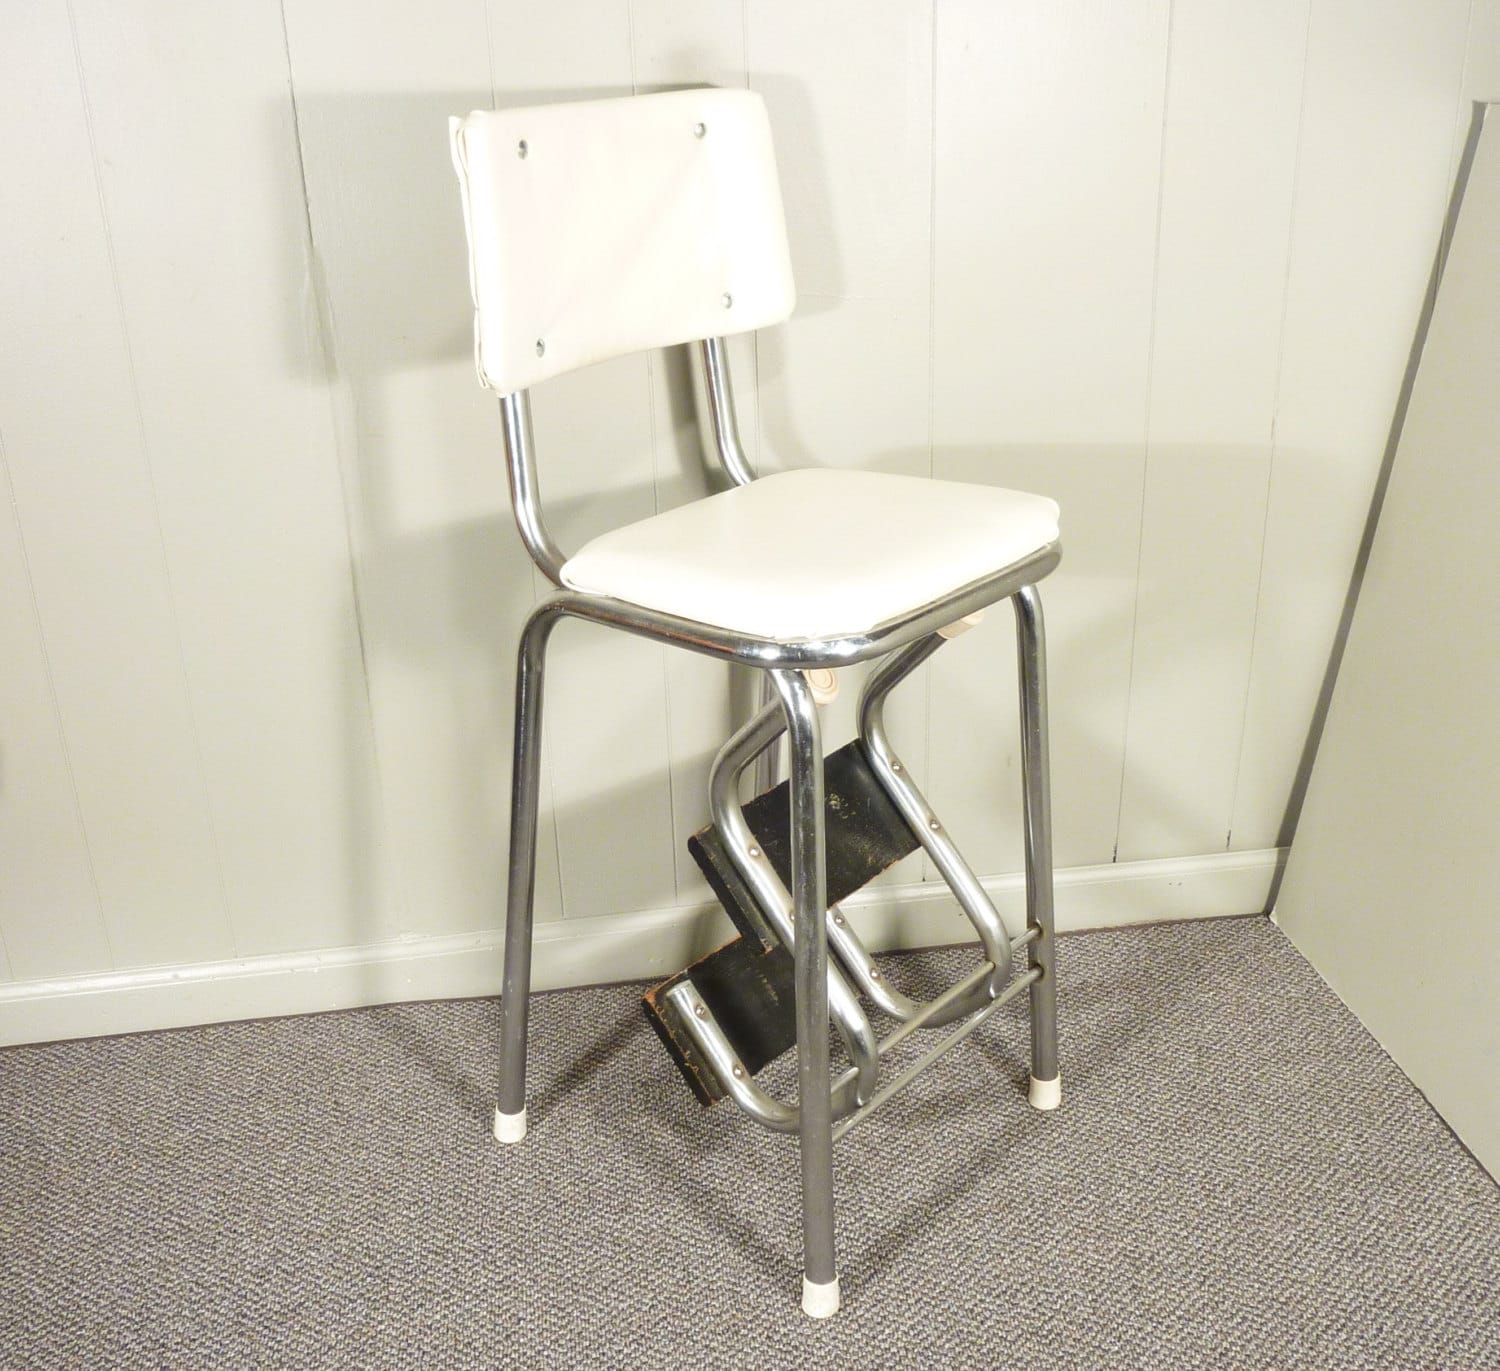 Retro 50s vintage step stool kitchen stool chair by gillardgurl